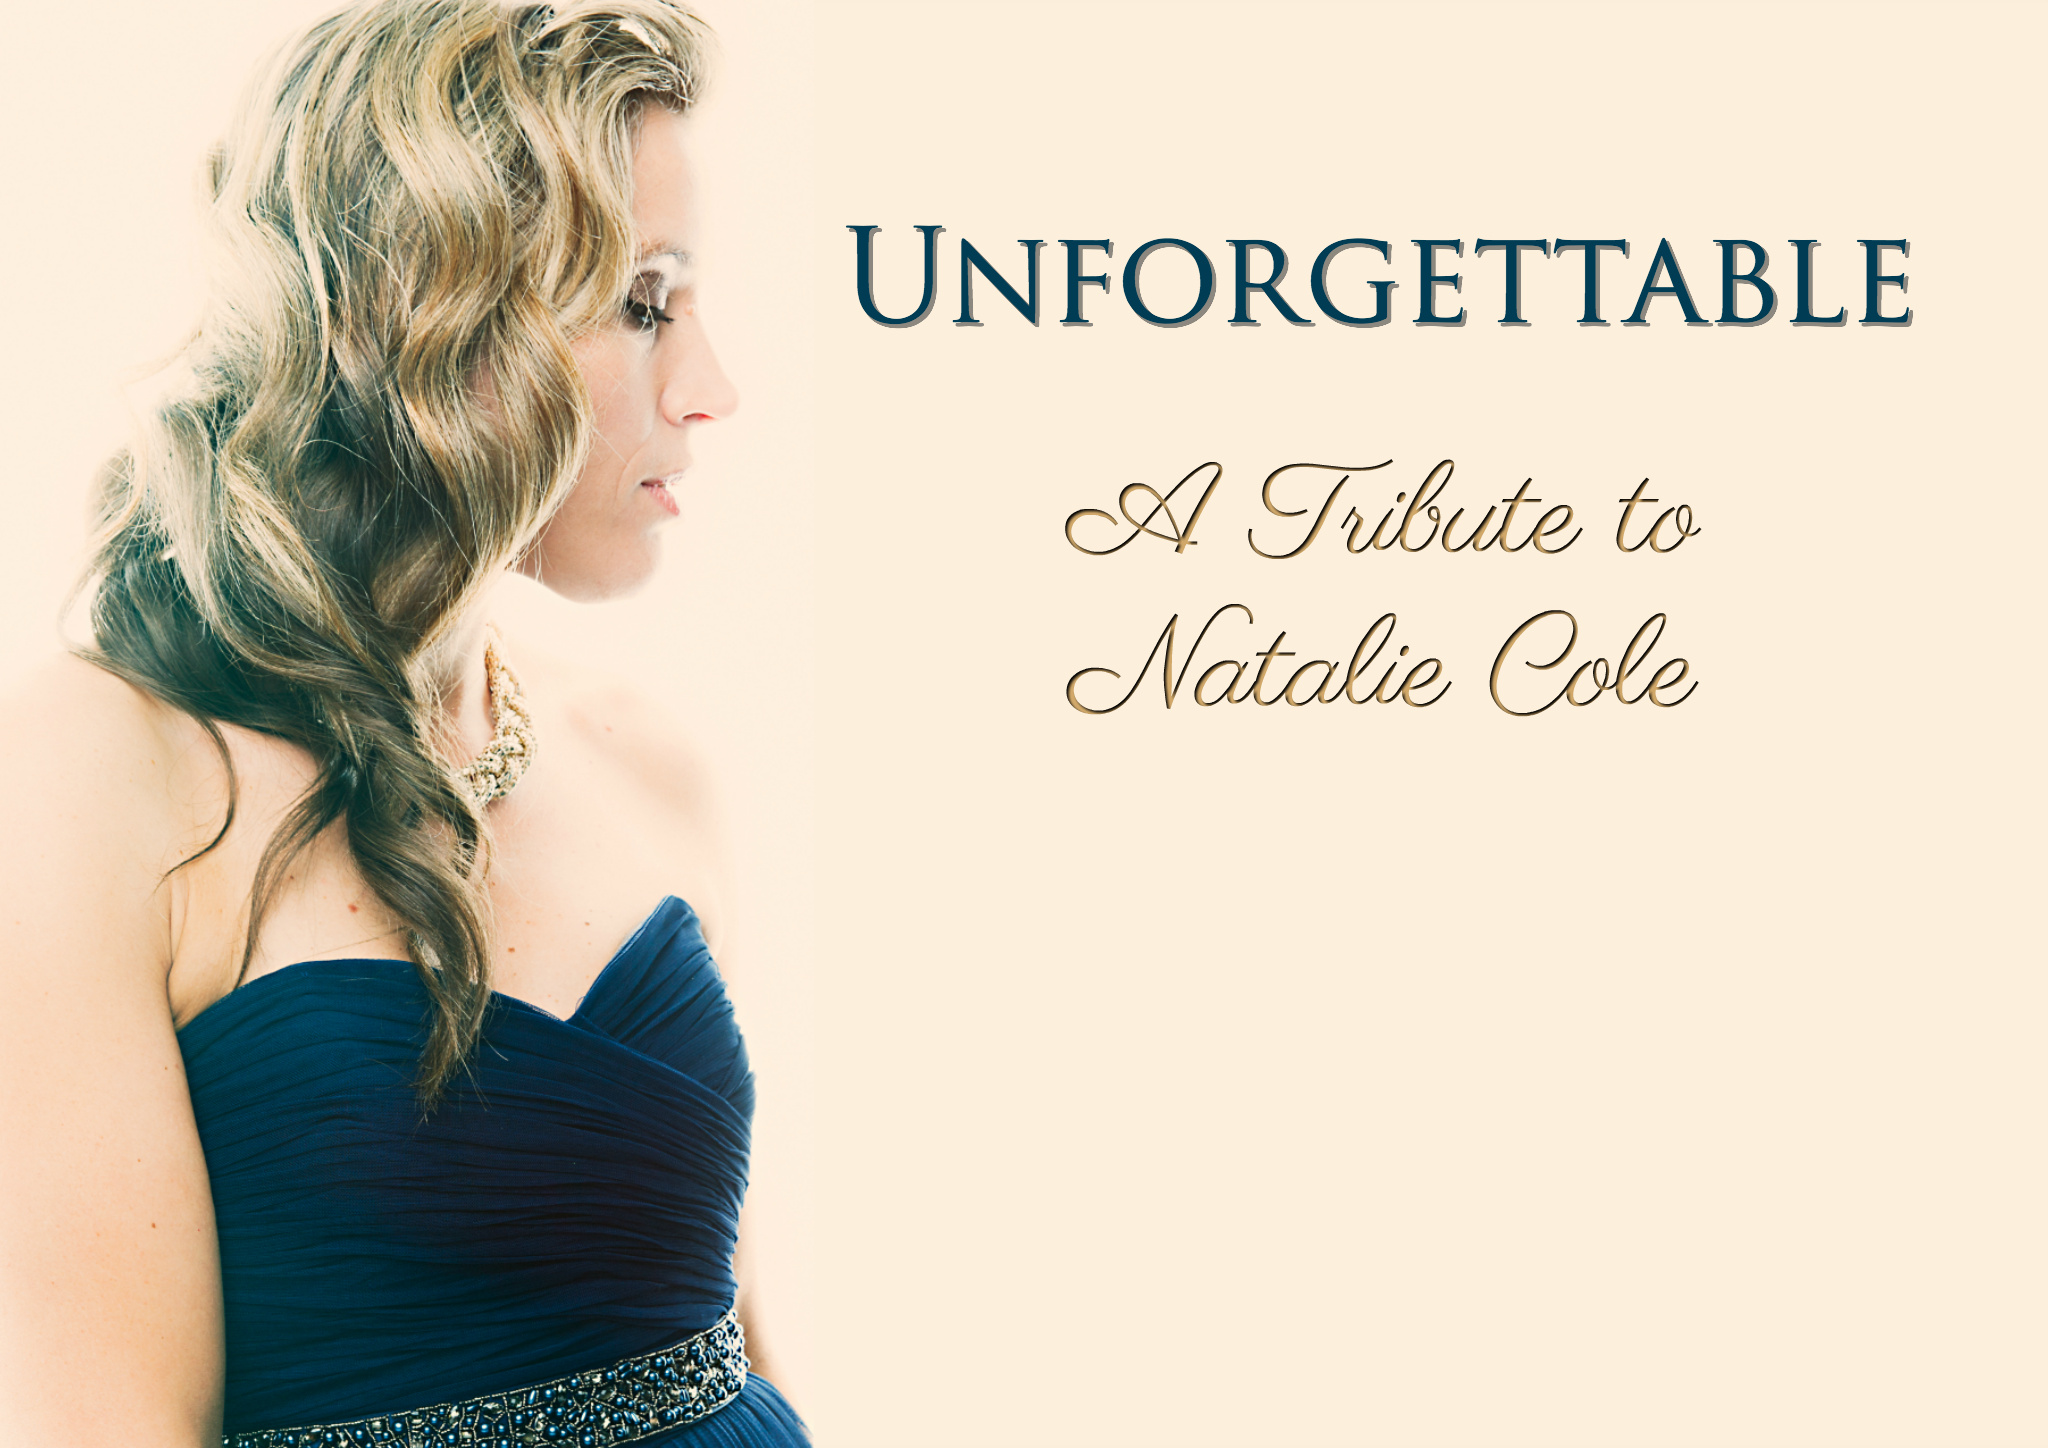 Unforgettable: A Tribute to Natalie